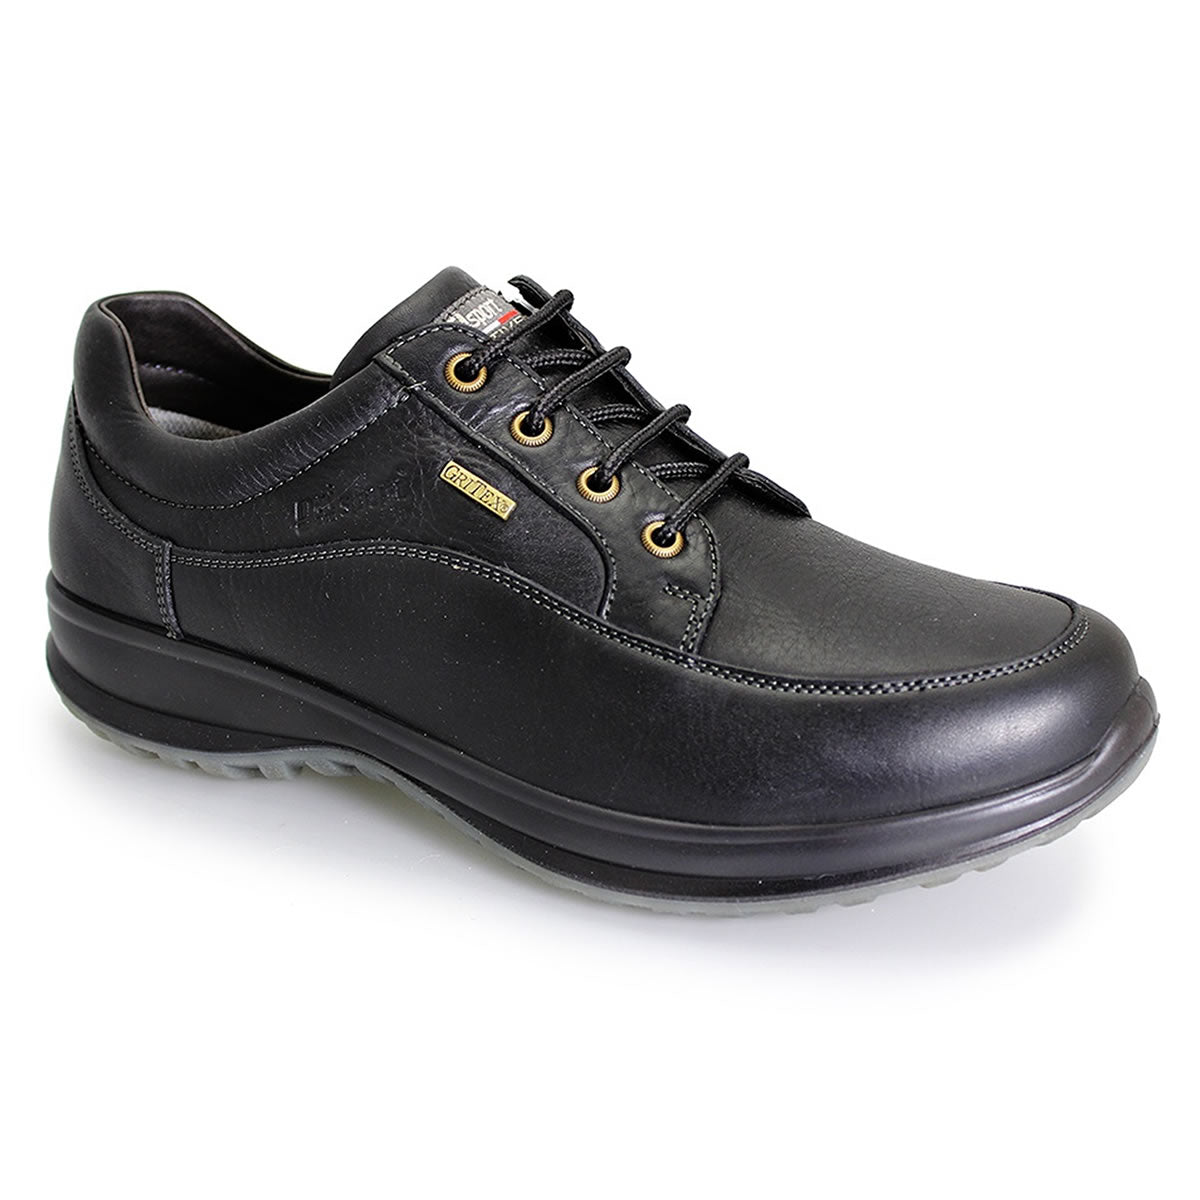 Livingston Comfort Shoe